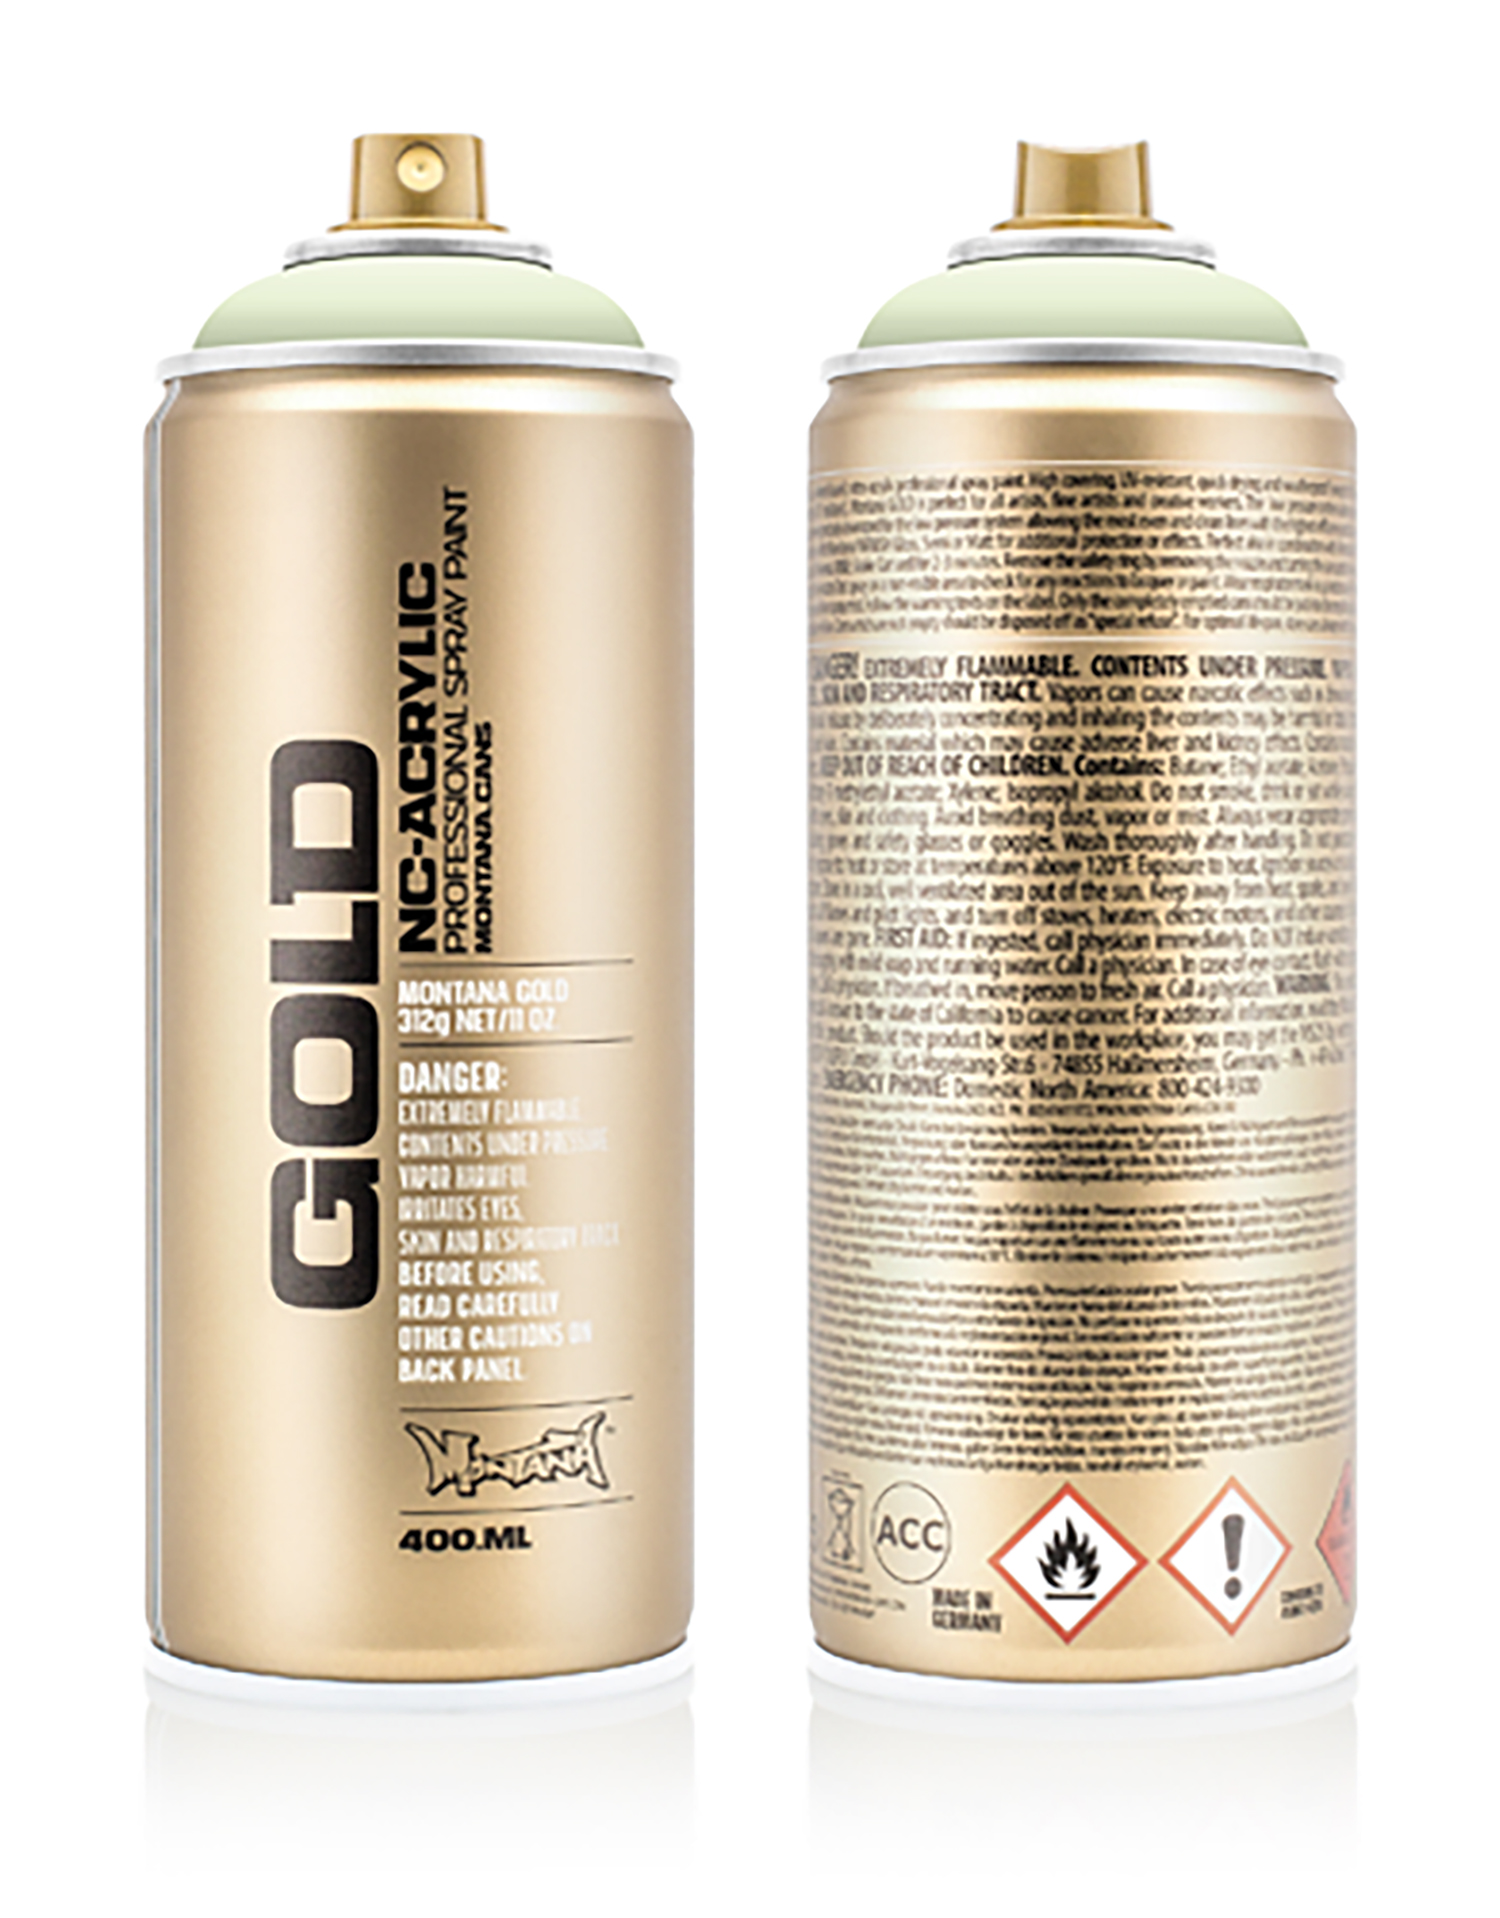 MONTANA-GOLD-SPRAY-400ML-G-6000